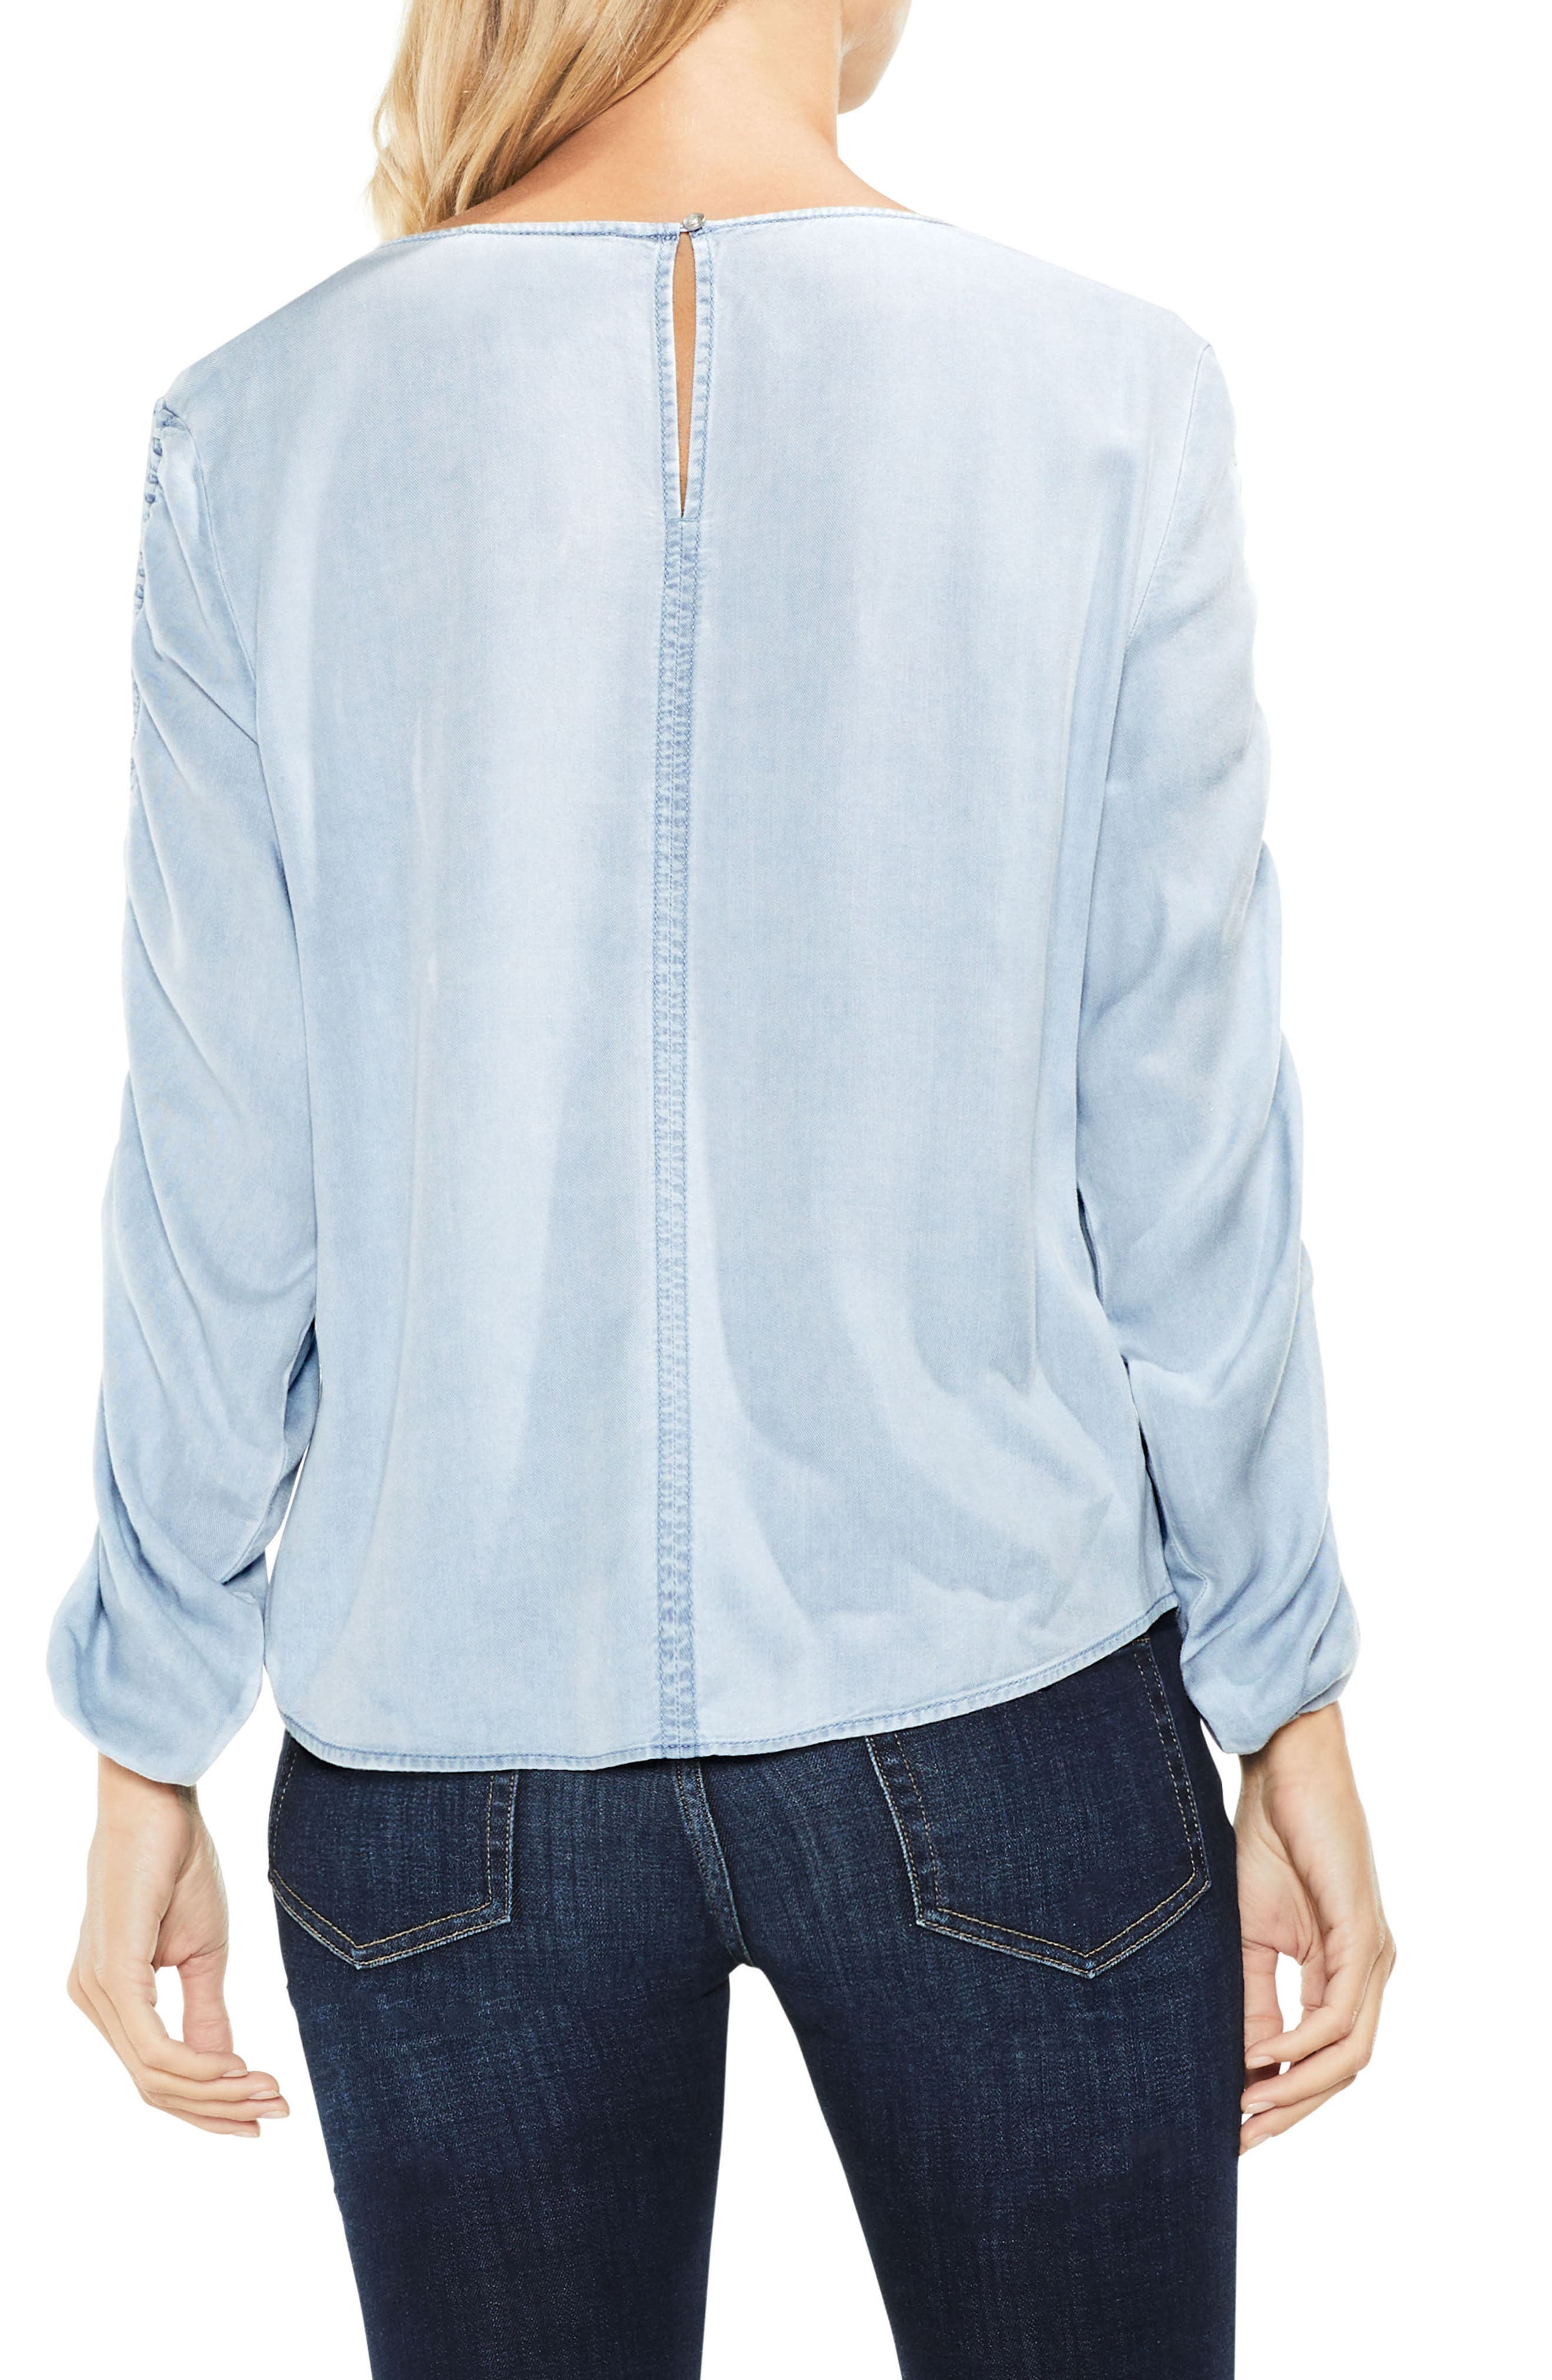 Alternate Image 3  - Two by Vince Camuto Ruched Sleeve Pastel Fade Top